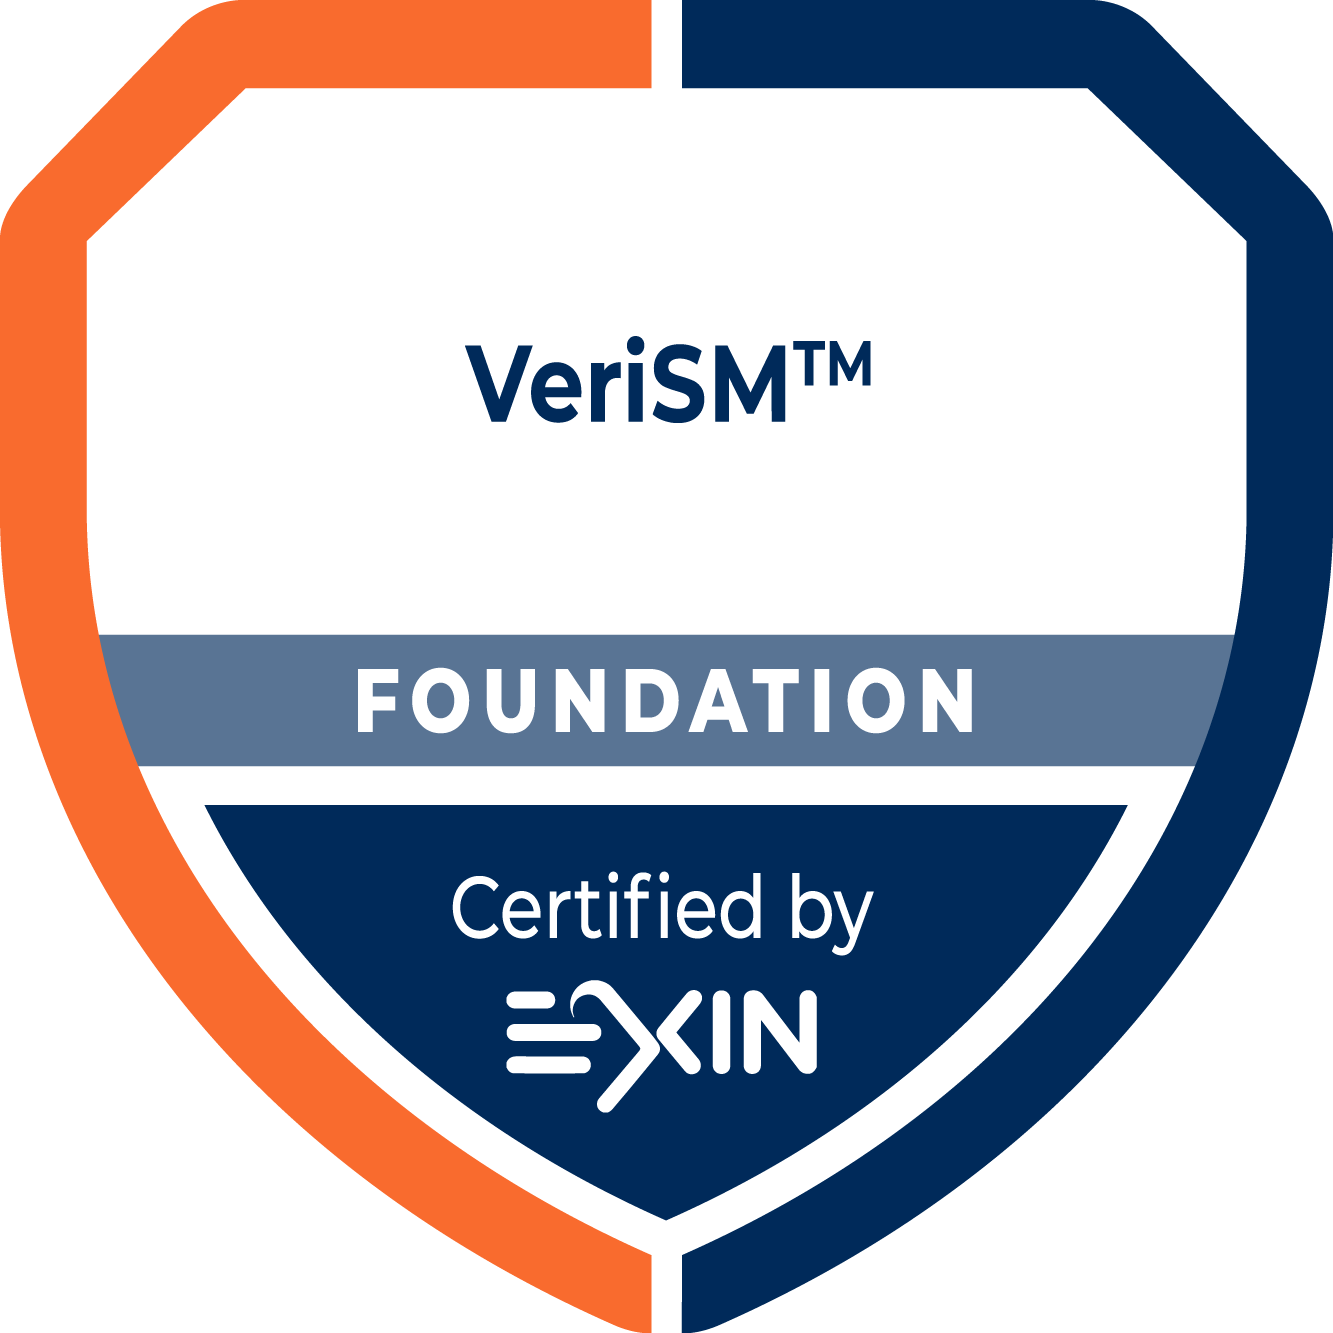 VeriSM™ Foundation